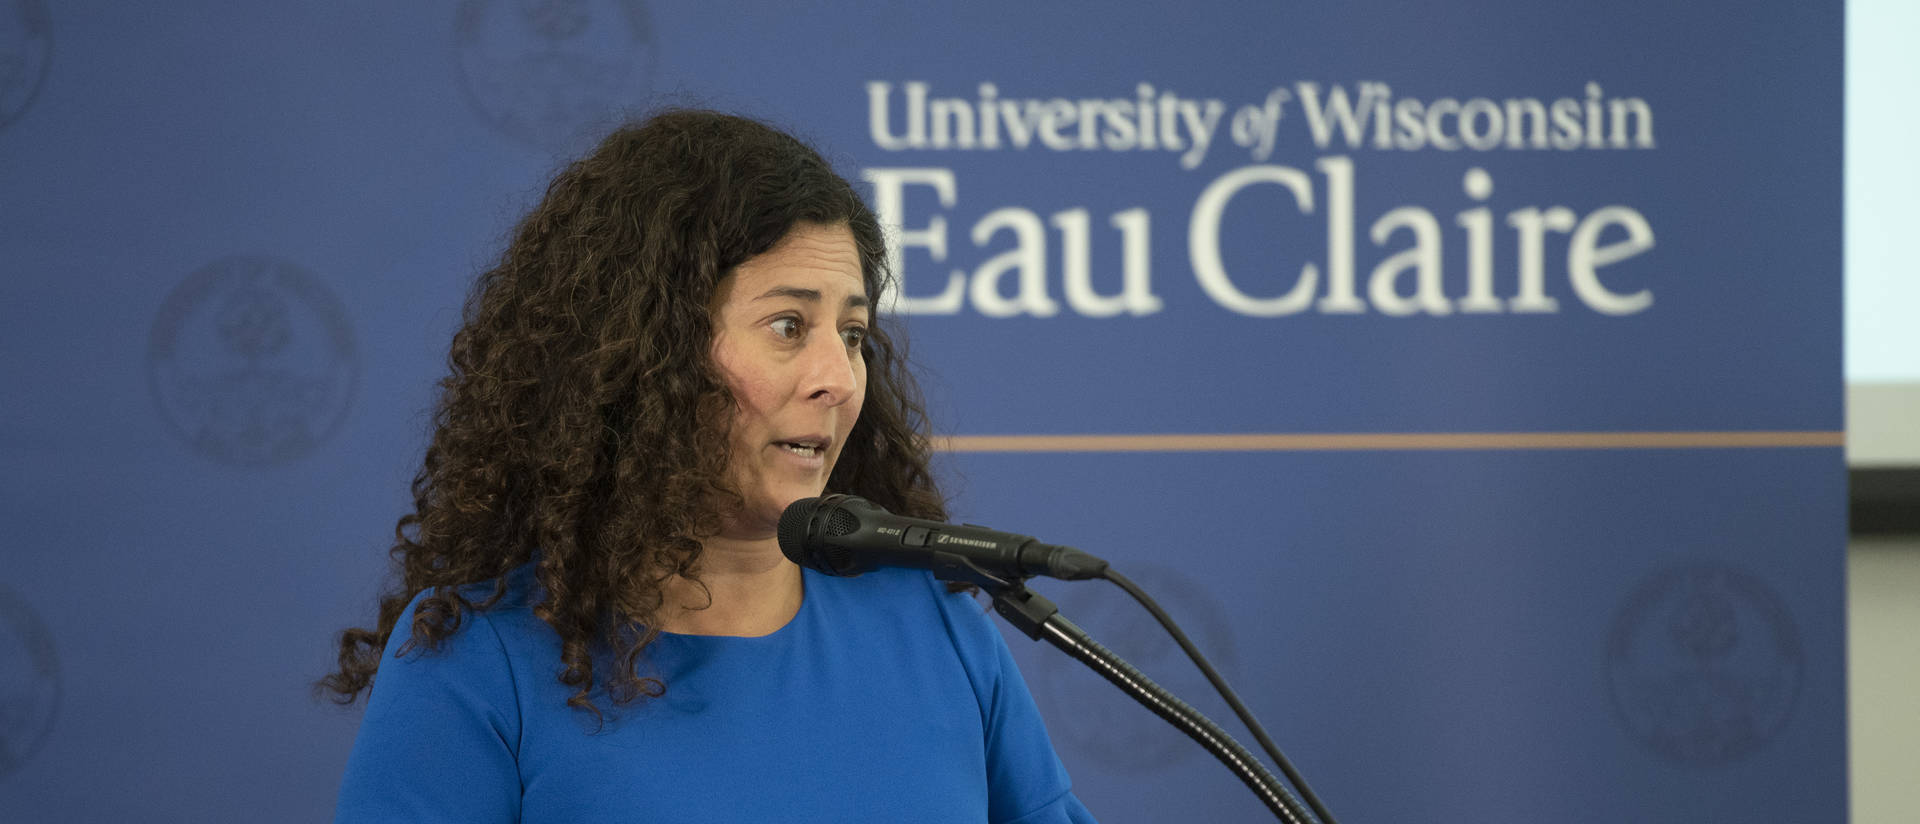 Olga Diaz, vice chancellor for equity, diversity and inclusion, and student affairs